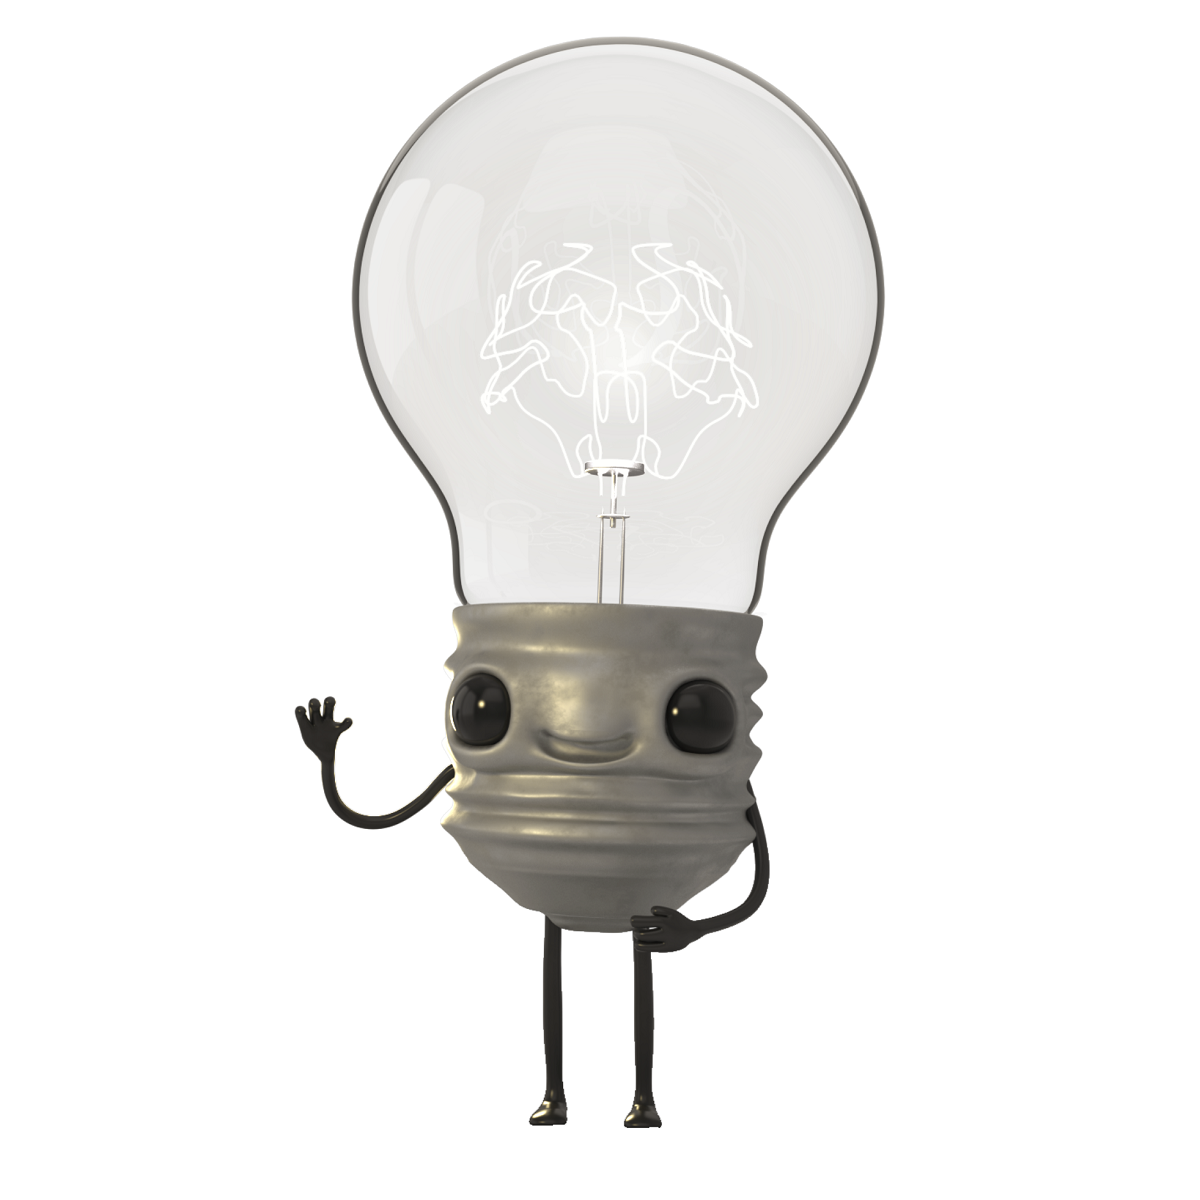 Respect Your Brain animated light globe character